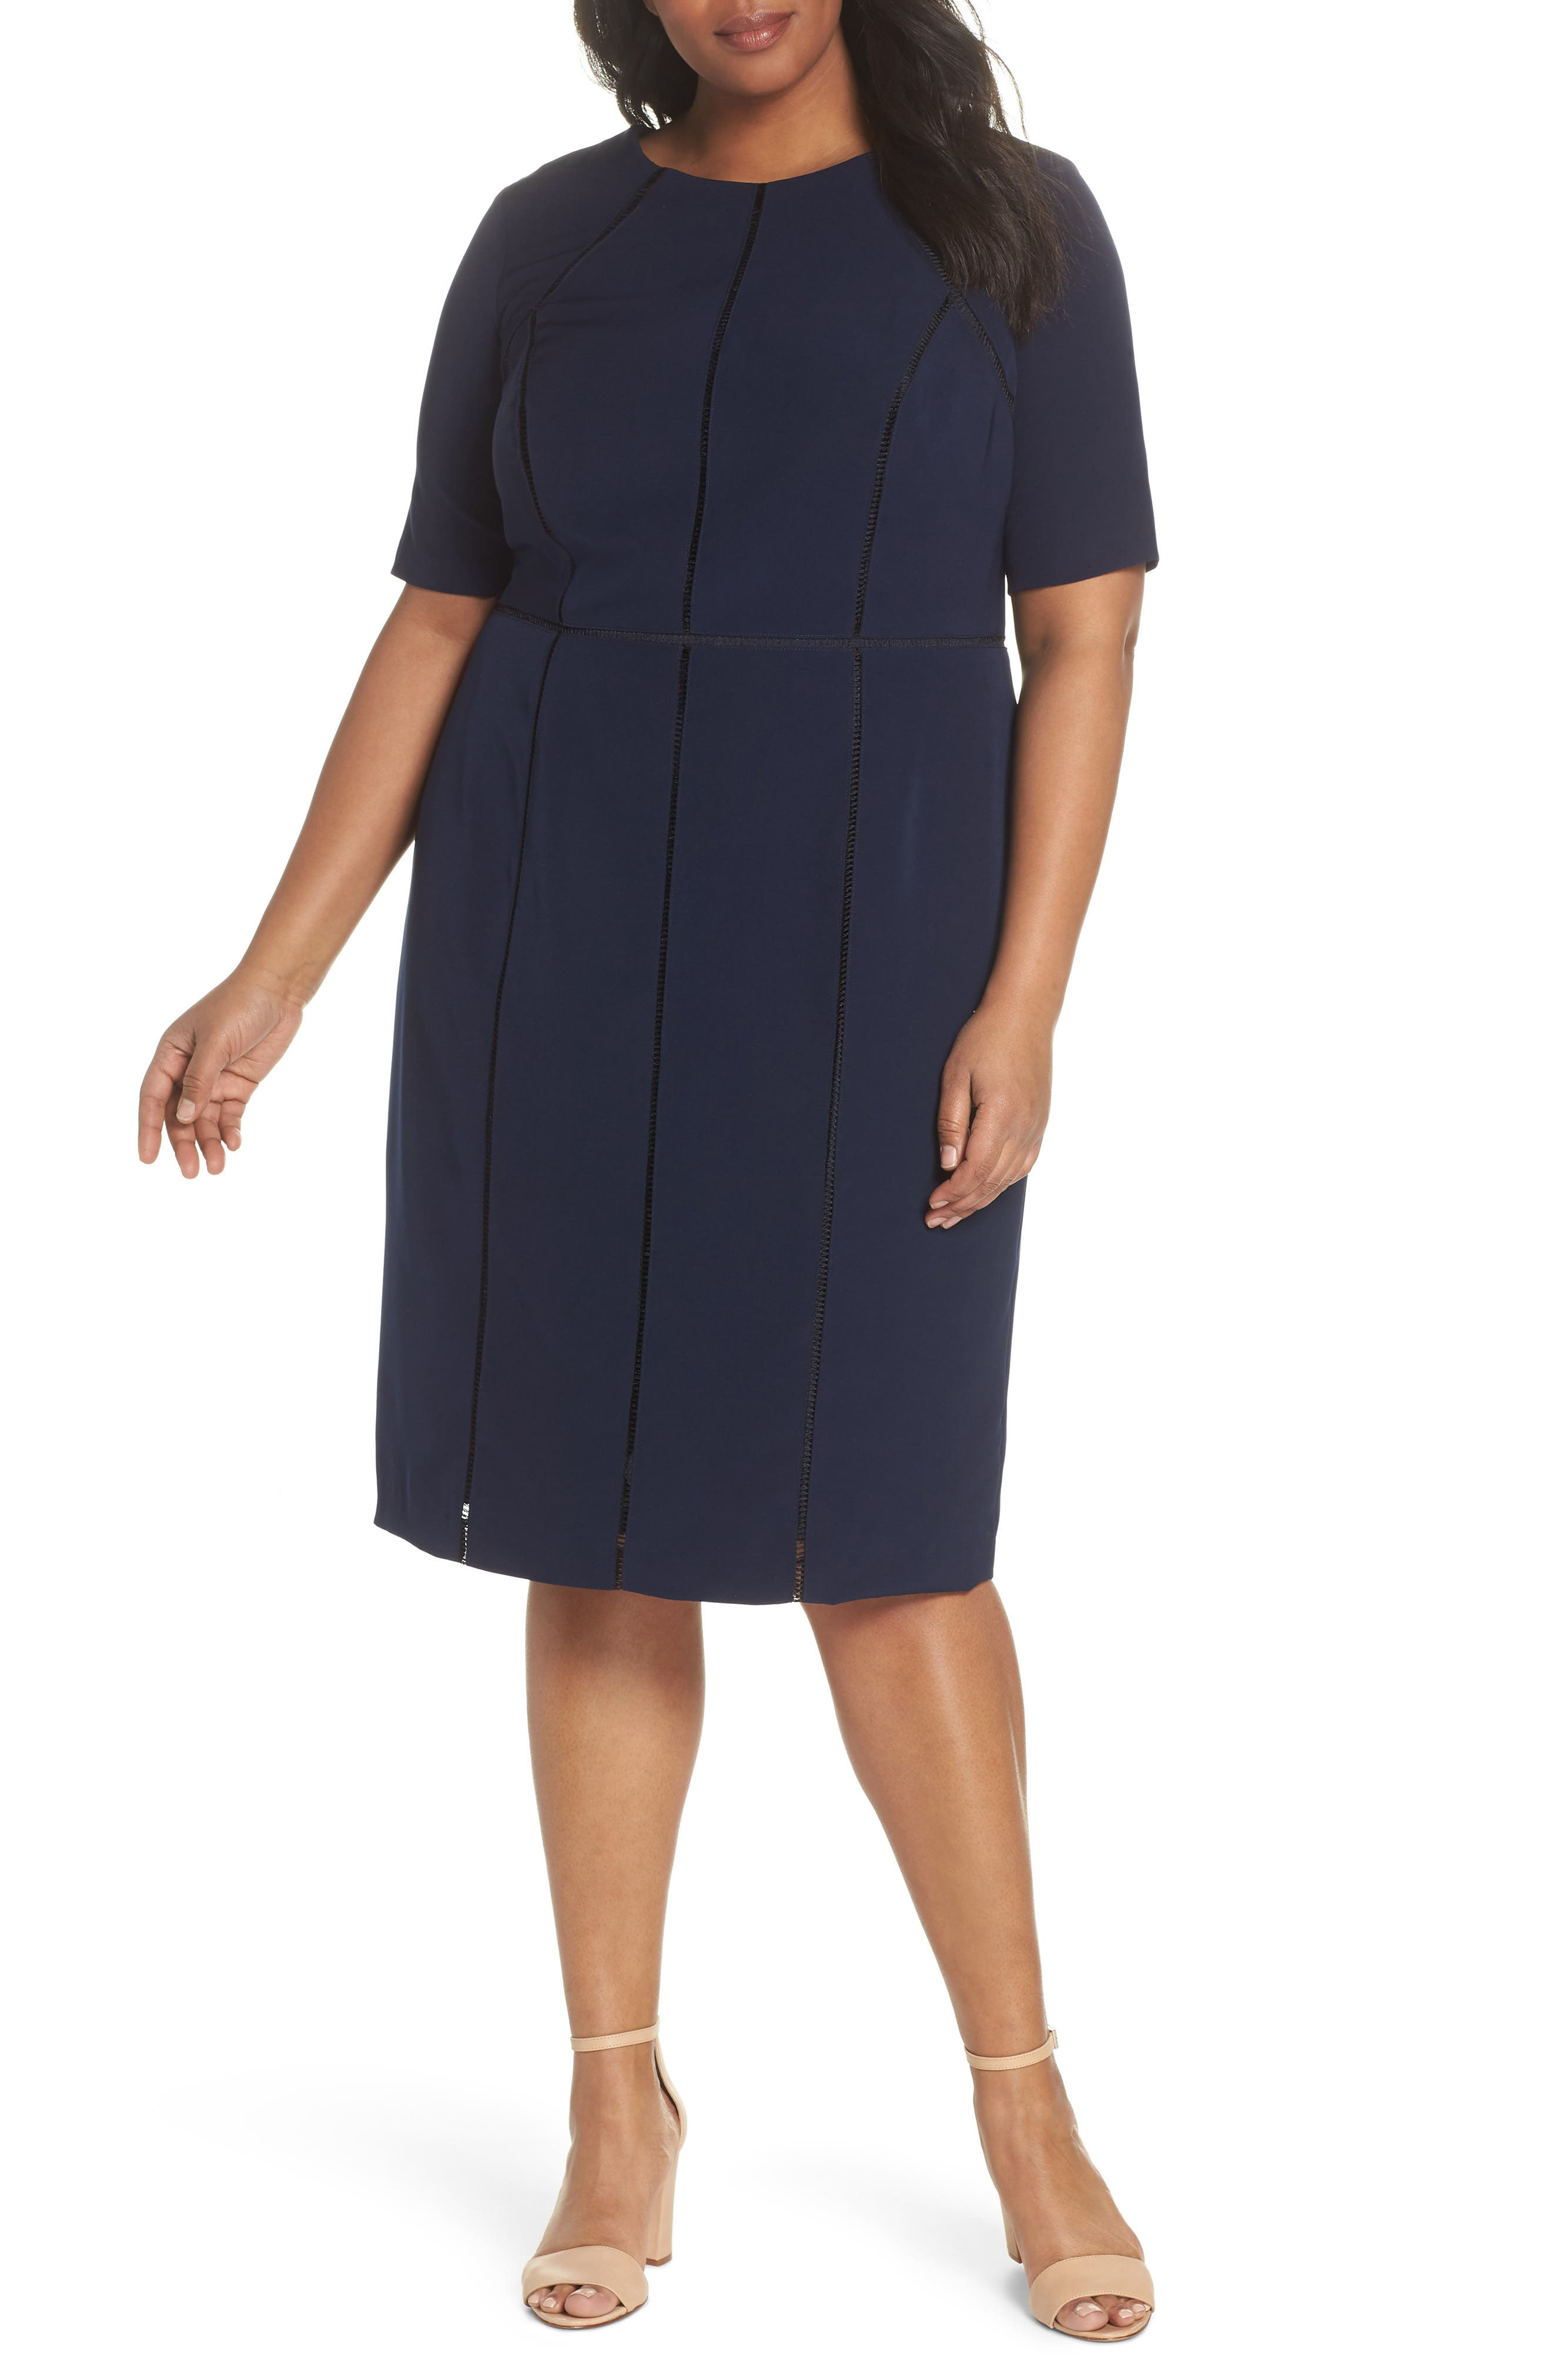 Maggy London Dream Crepe Sheath Dress (Plus Size)